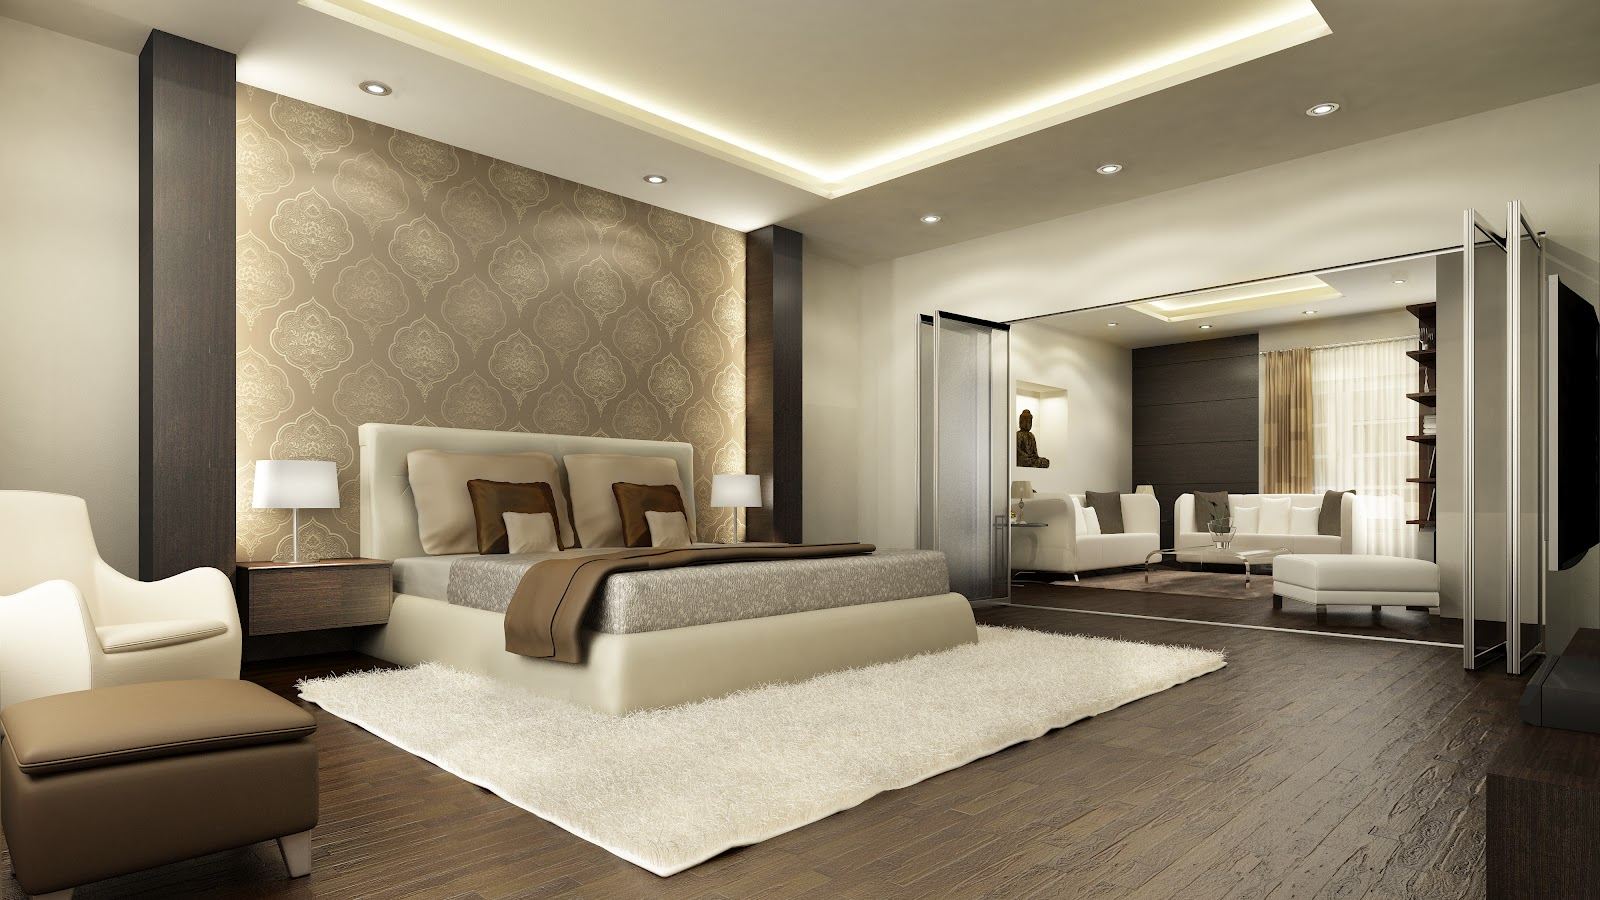 10 most popular master bedroom designs for 2014 qnud Single bedroom design ideas